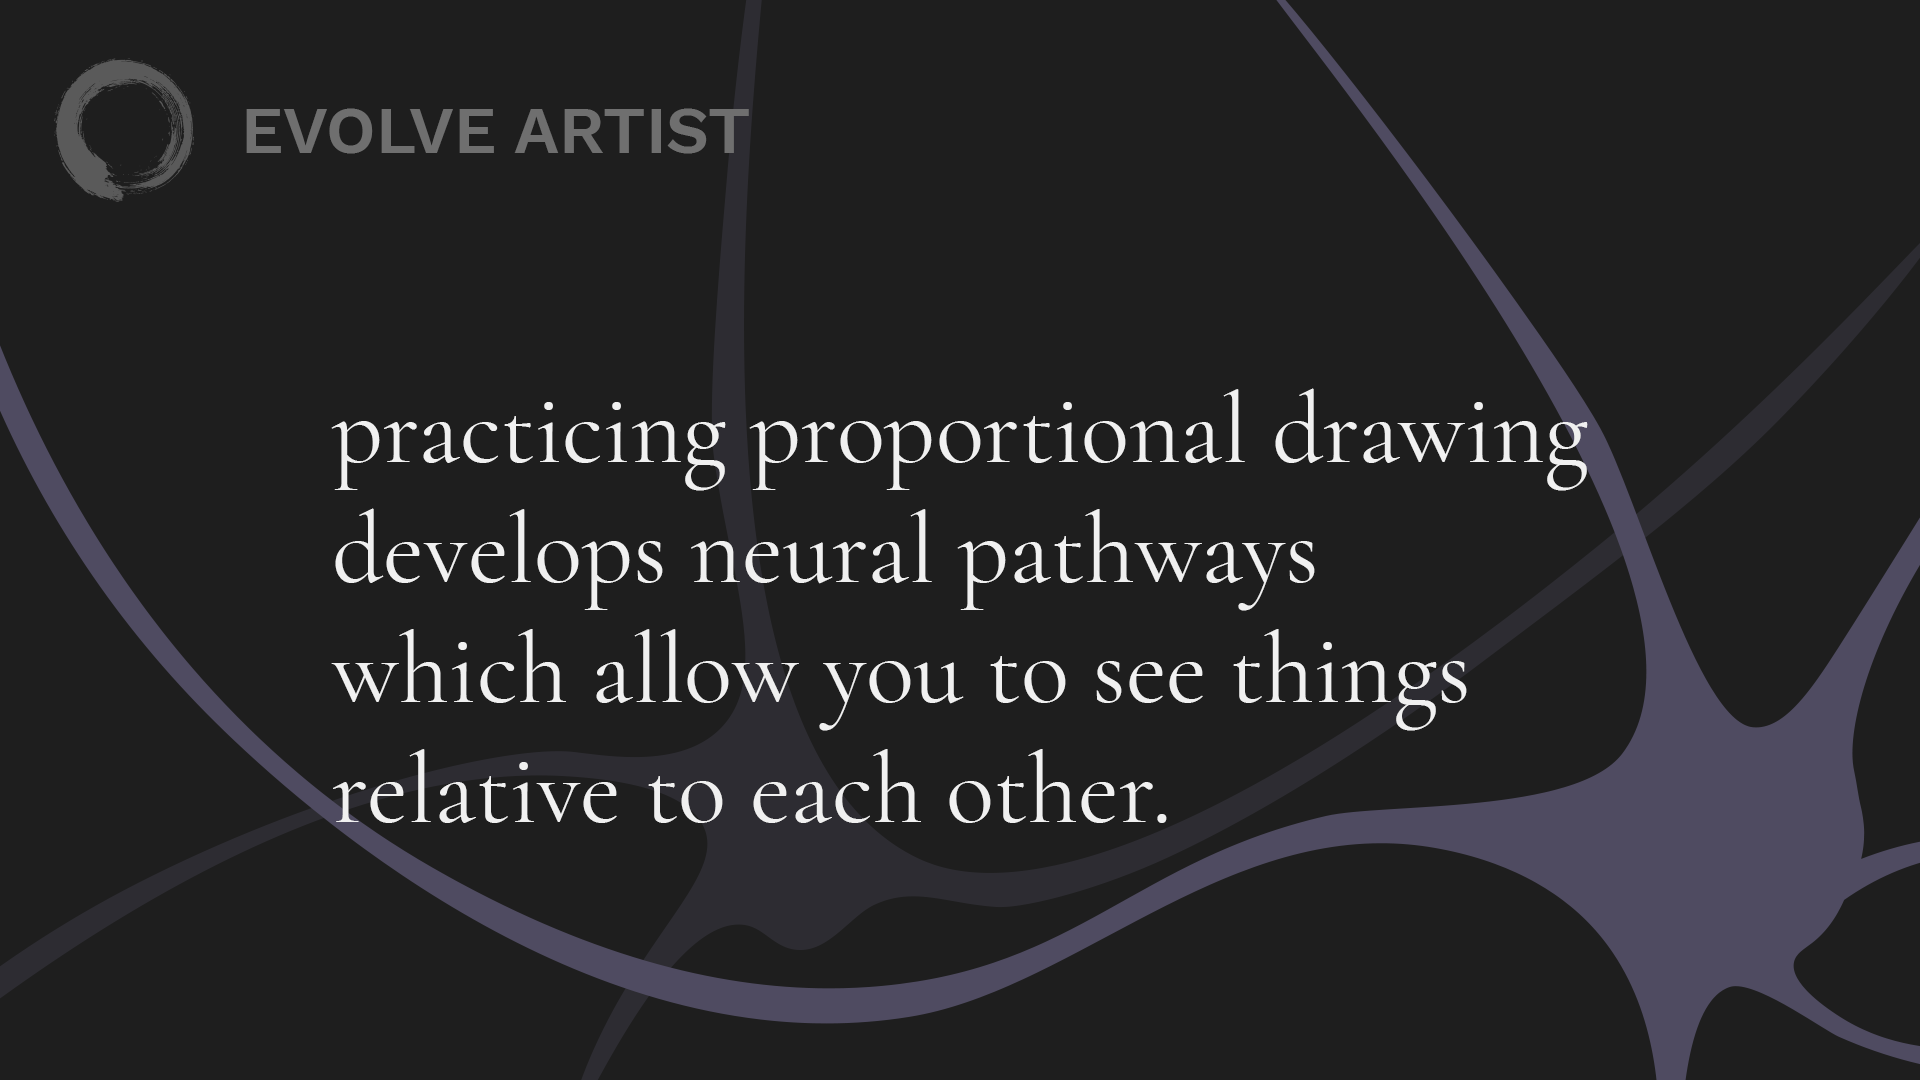 practicing proportional drawing develops neural pathways which allow you to see things relative to each other